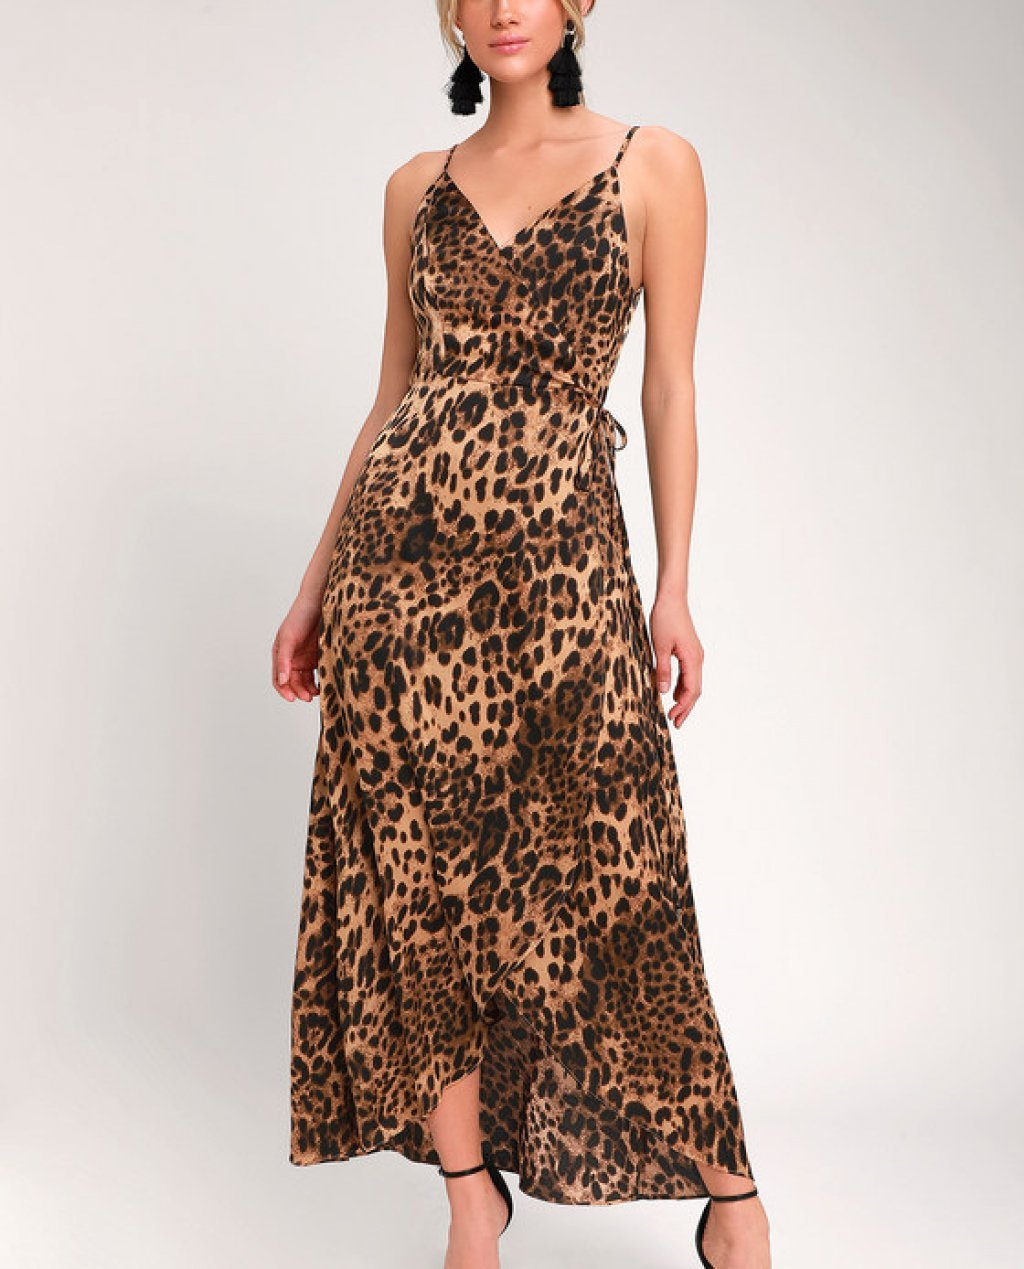 Wildly Wonderful Leopard Print Satin Maxi Wrap Dress